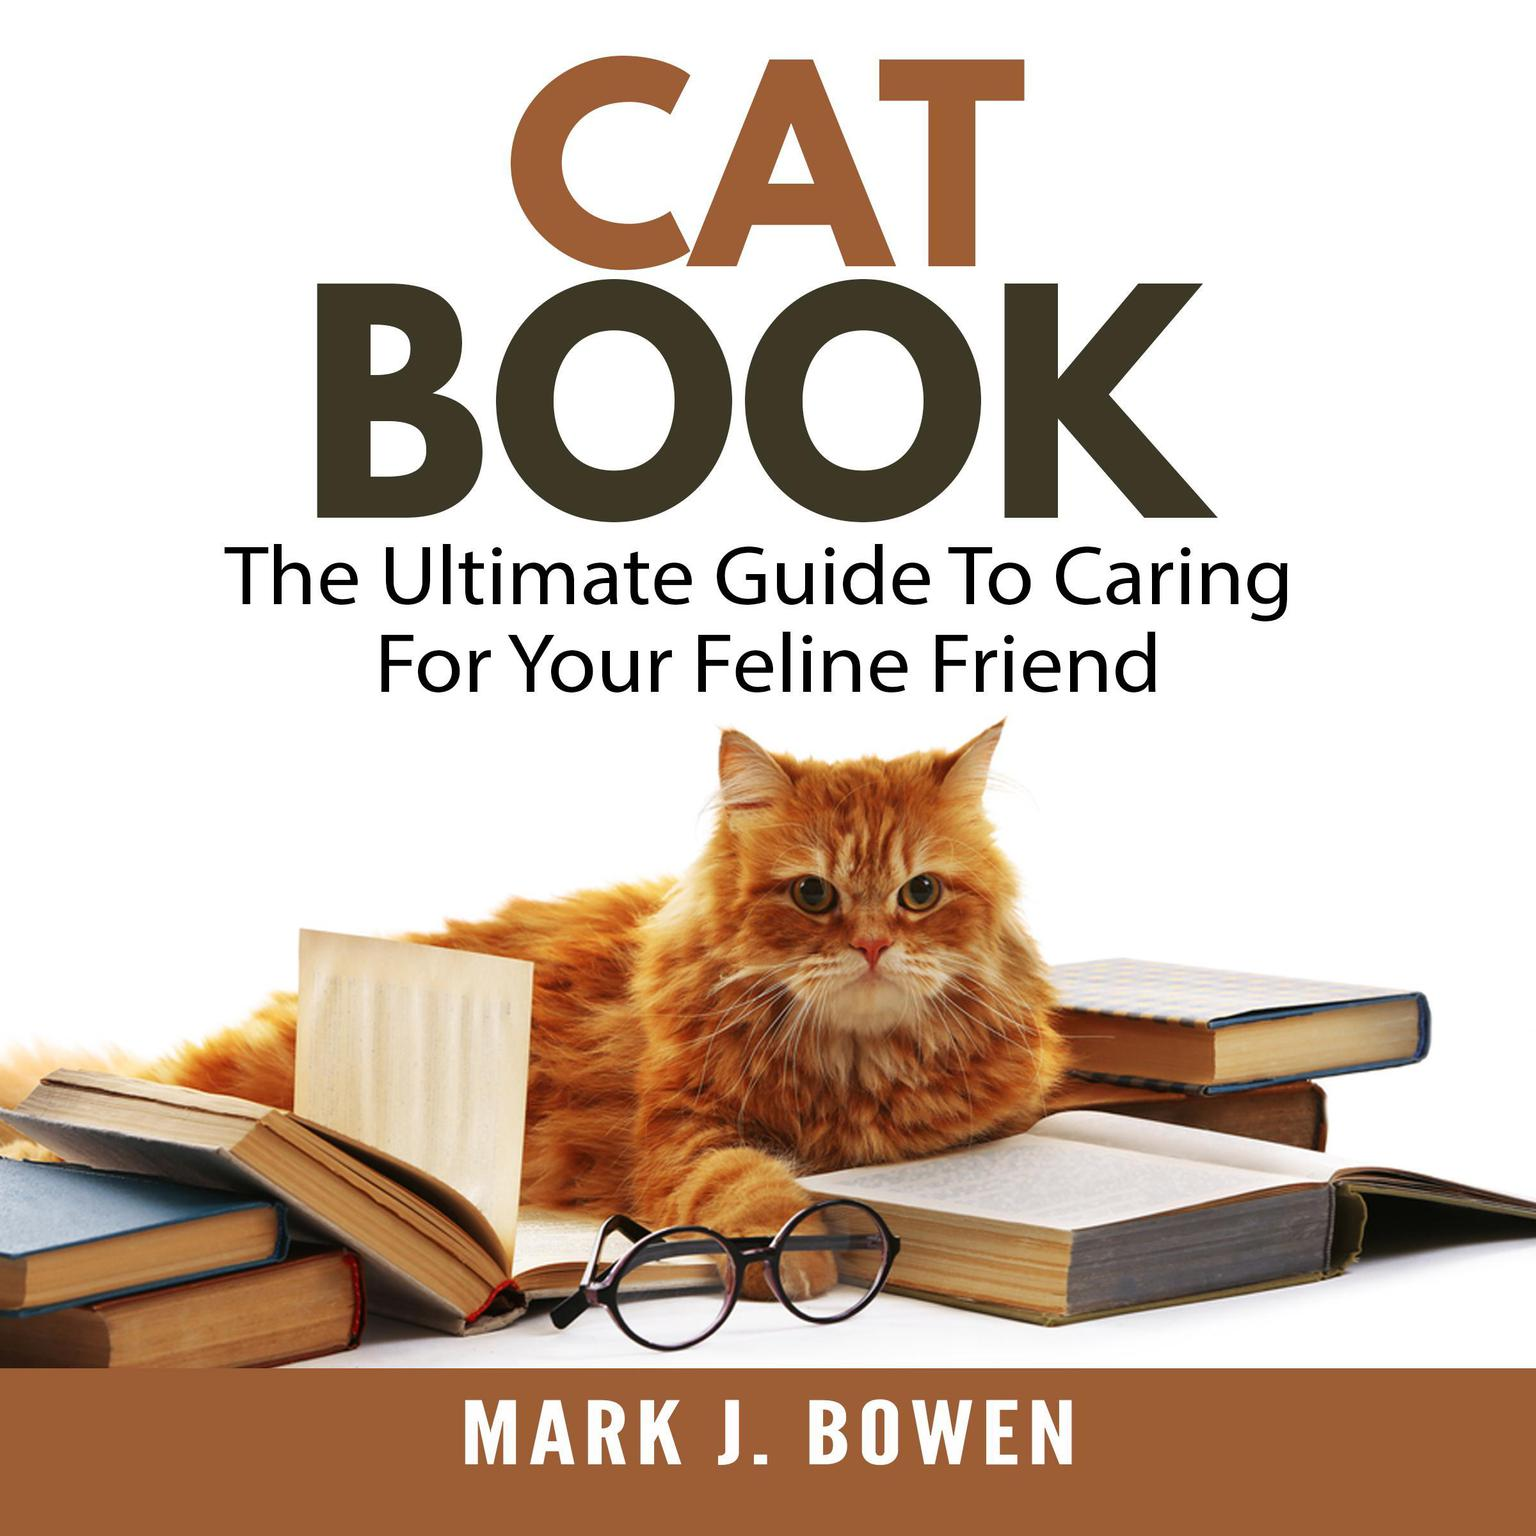 Printable Cat Book: The Ultimate Guide To Caring For Your Feline Friend Audiobook Cover Art